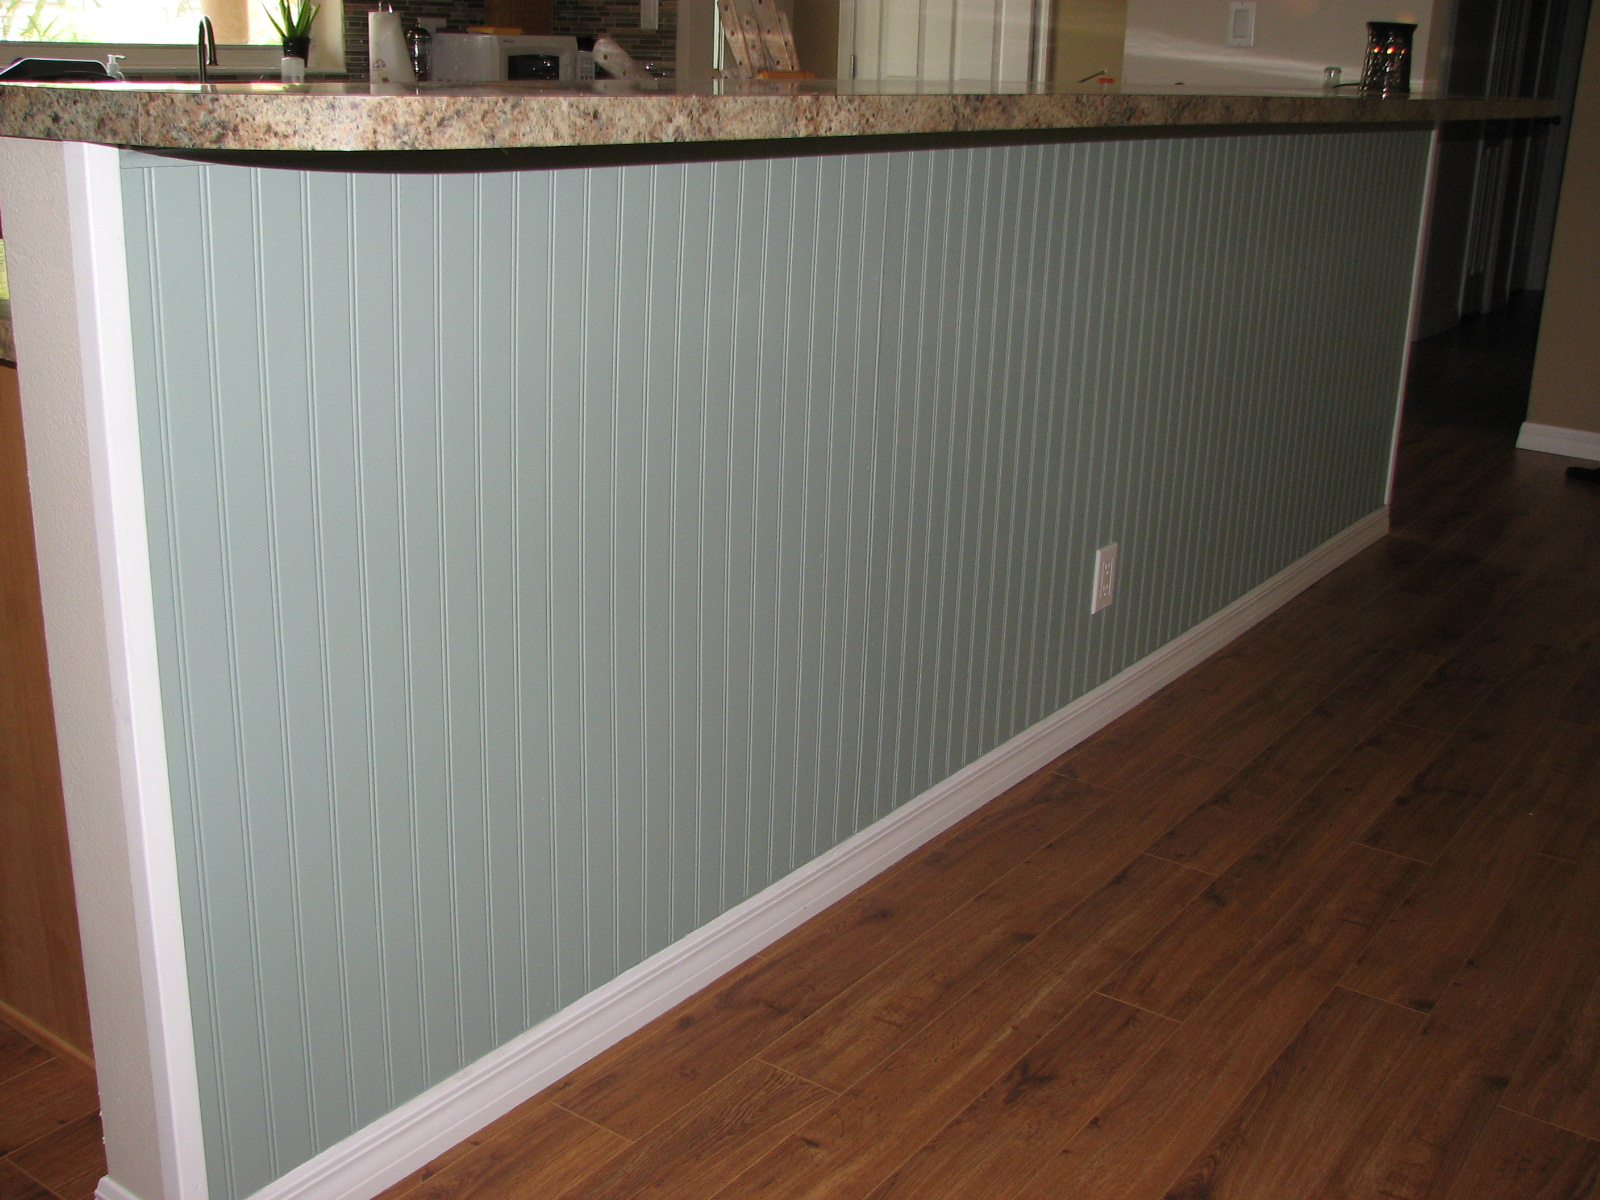 Durable Wood Flooring Beach House Wainscoting Bead Board In Cocoa Beach Florida